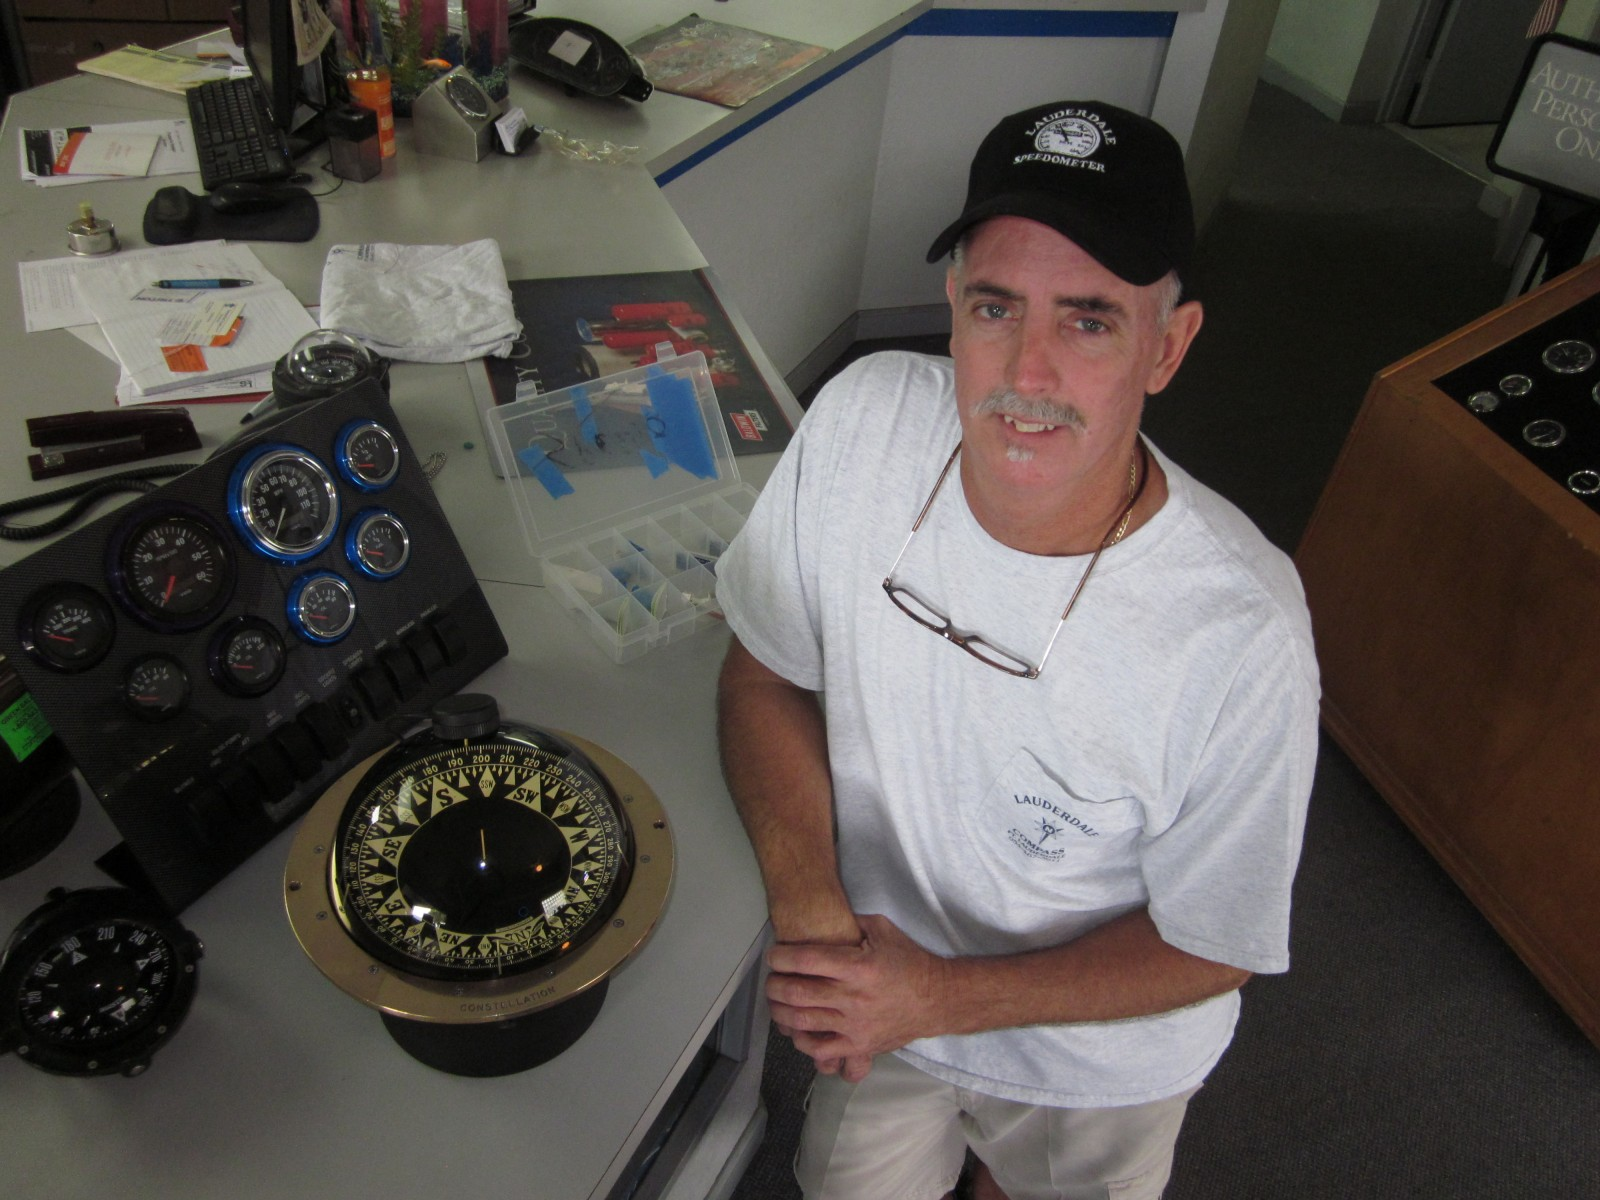 Jay Verkey, owner of Lauderdale Compass in Ft. Lauderdale. Photo by Dorie Cox